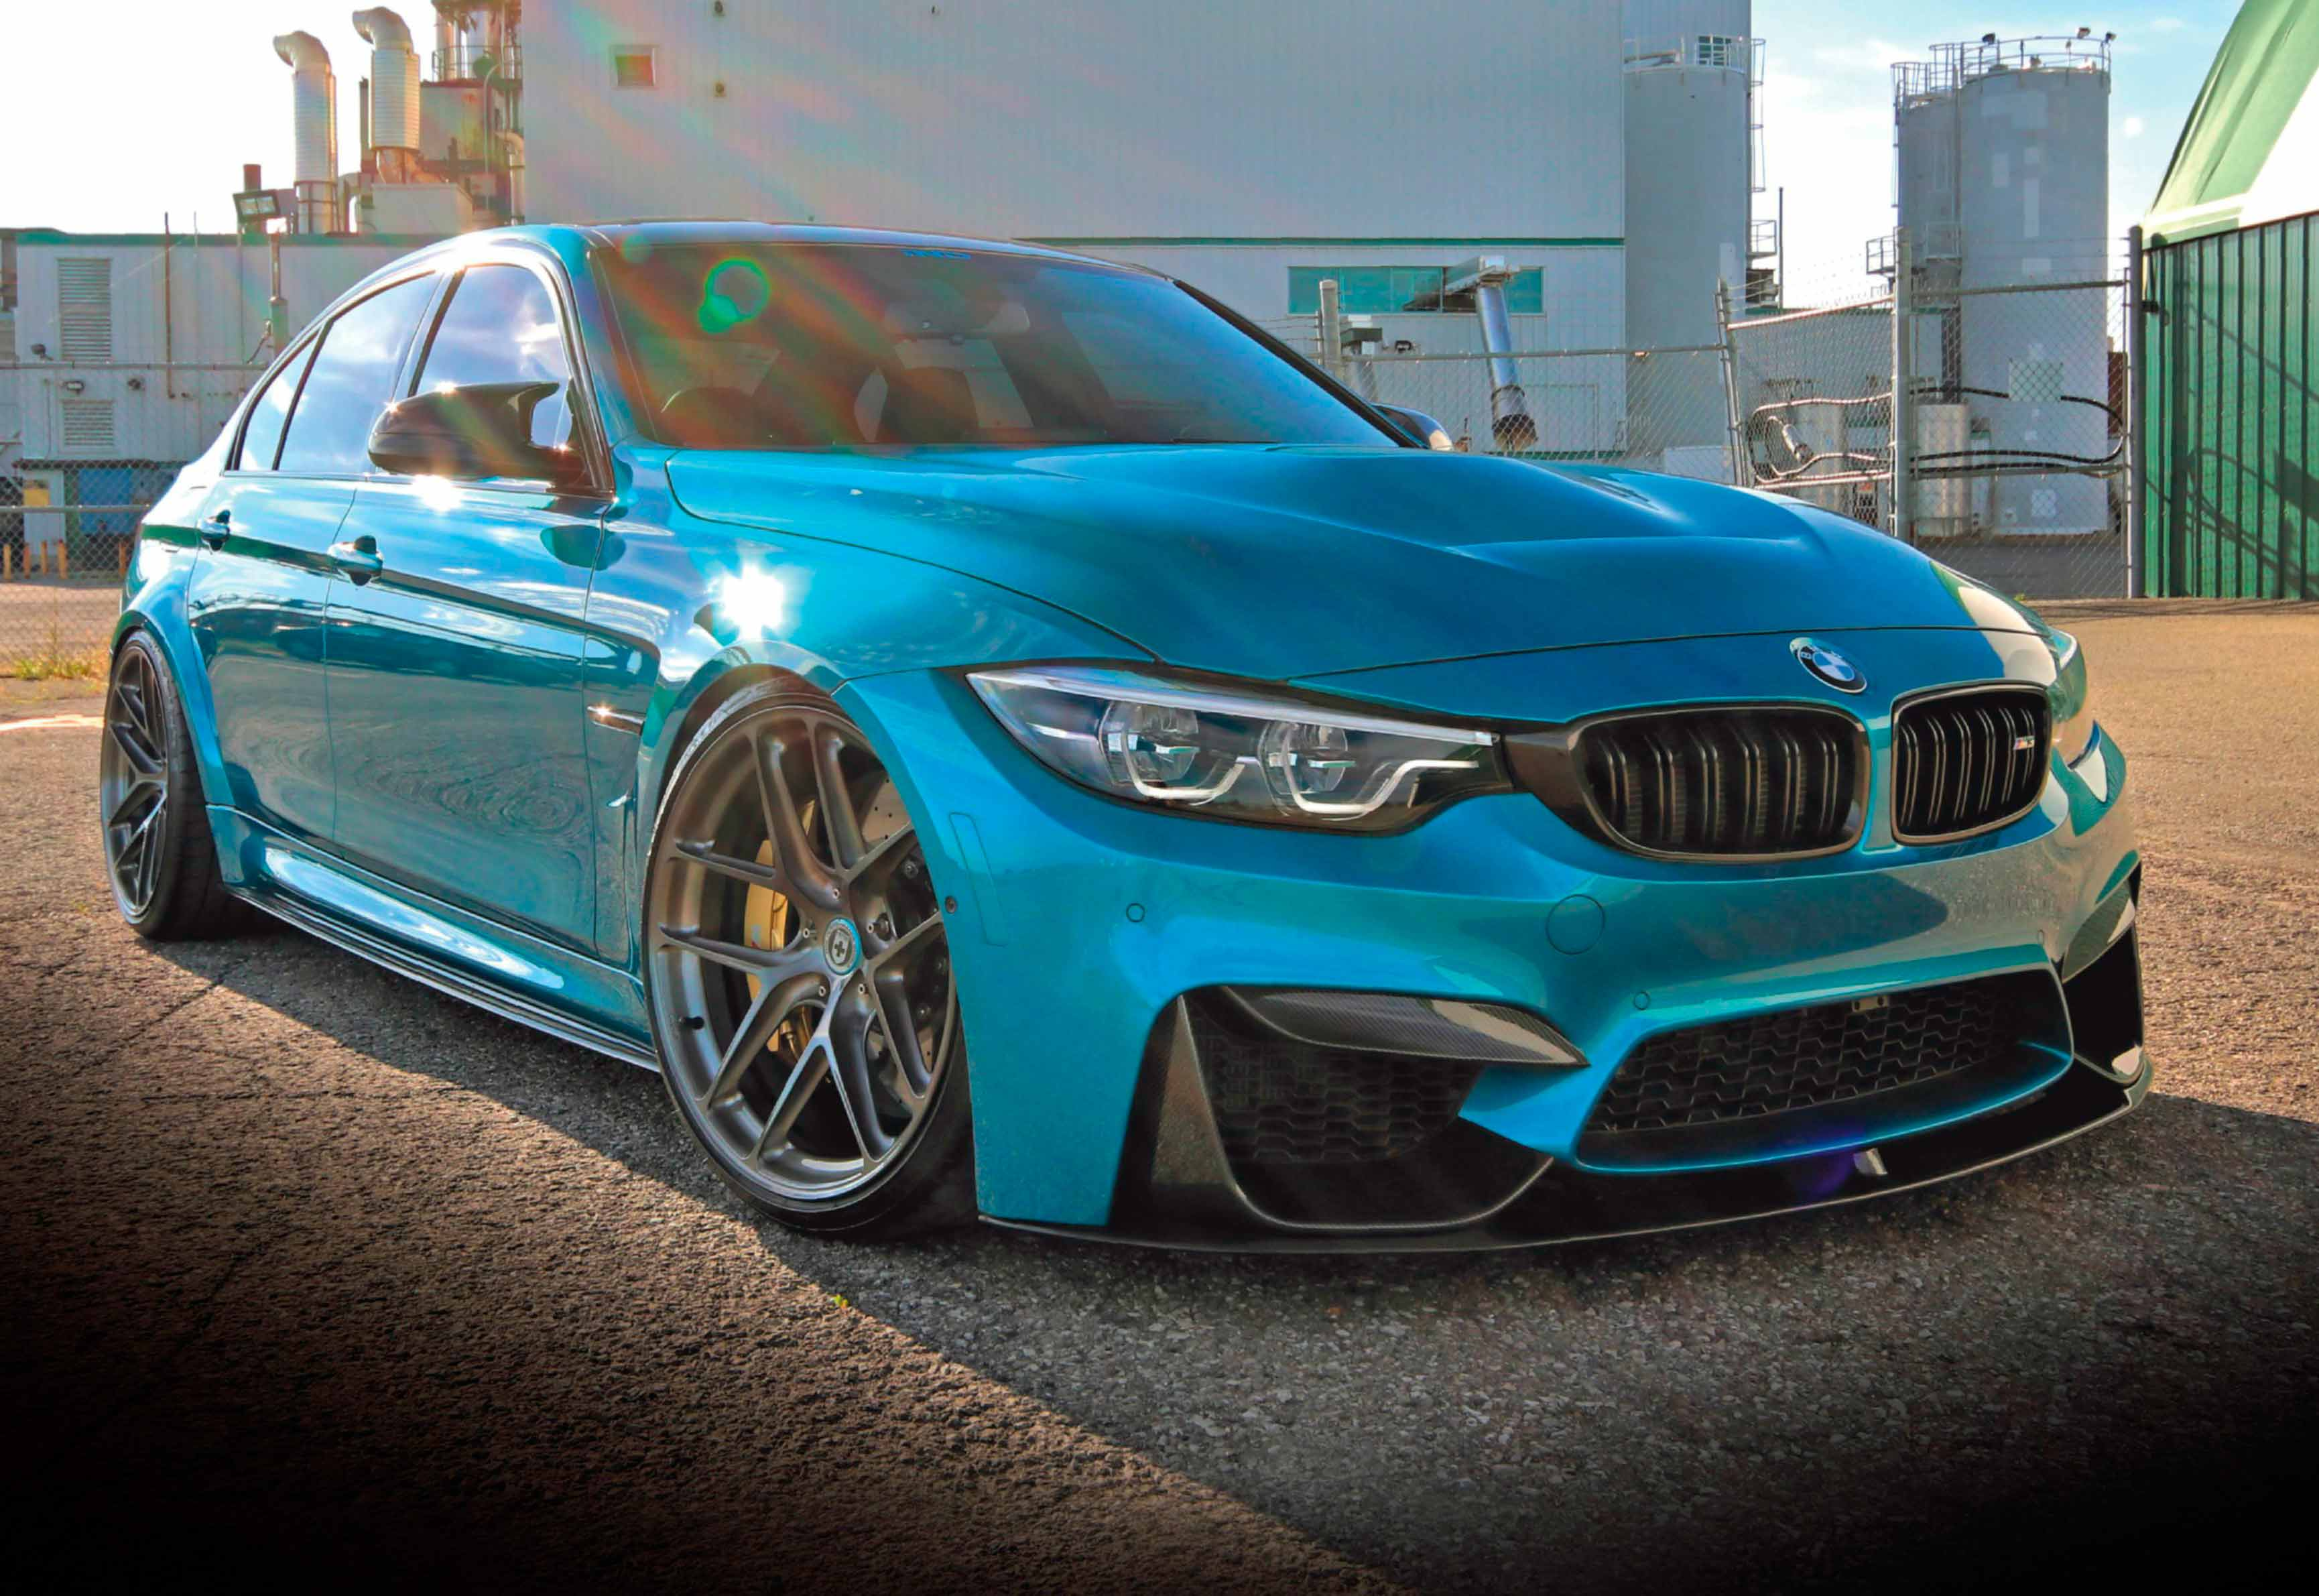 styled and tuned 500bhp bmw m3 f80 drive my blogs drive. Black Bedroom Furniture Sets. Home Design Ideas